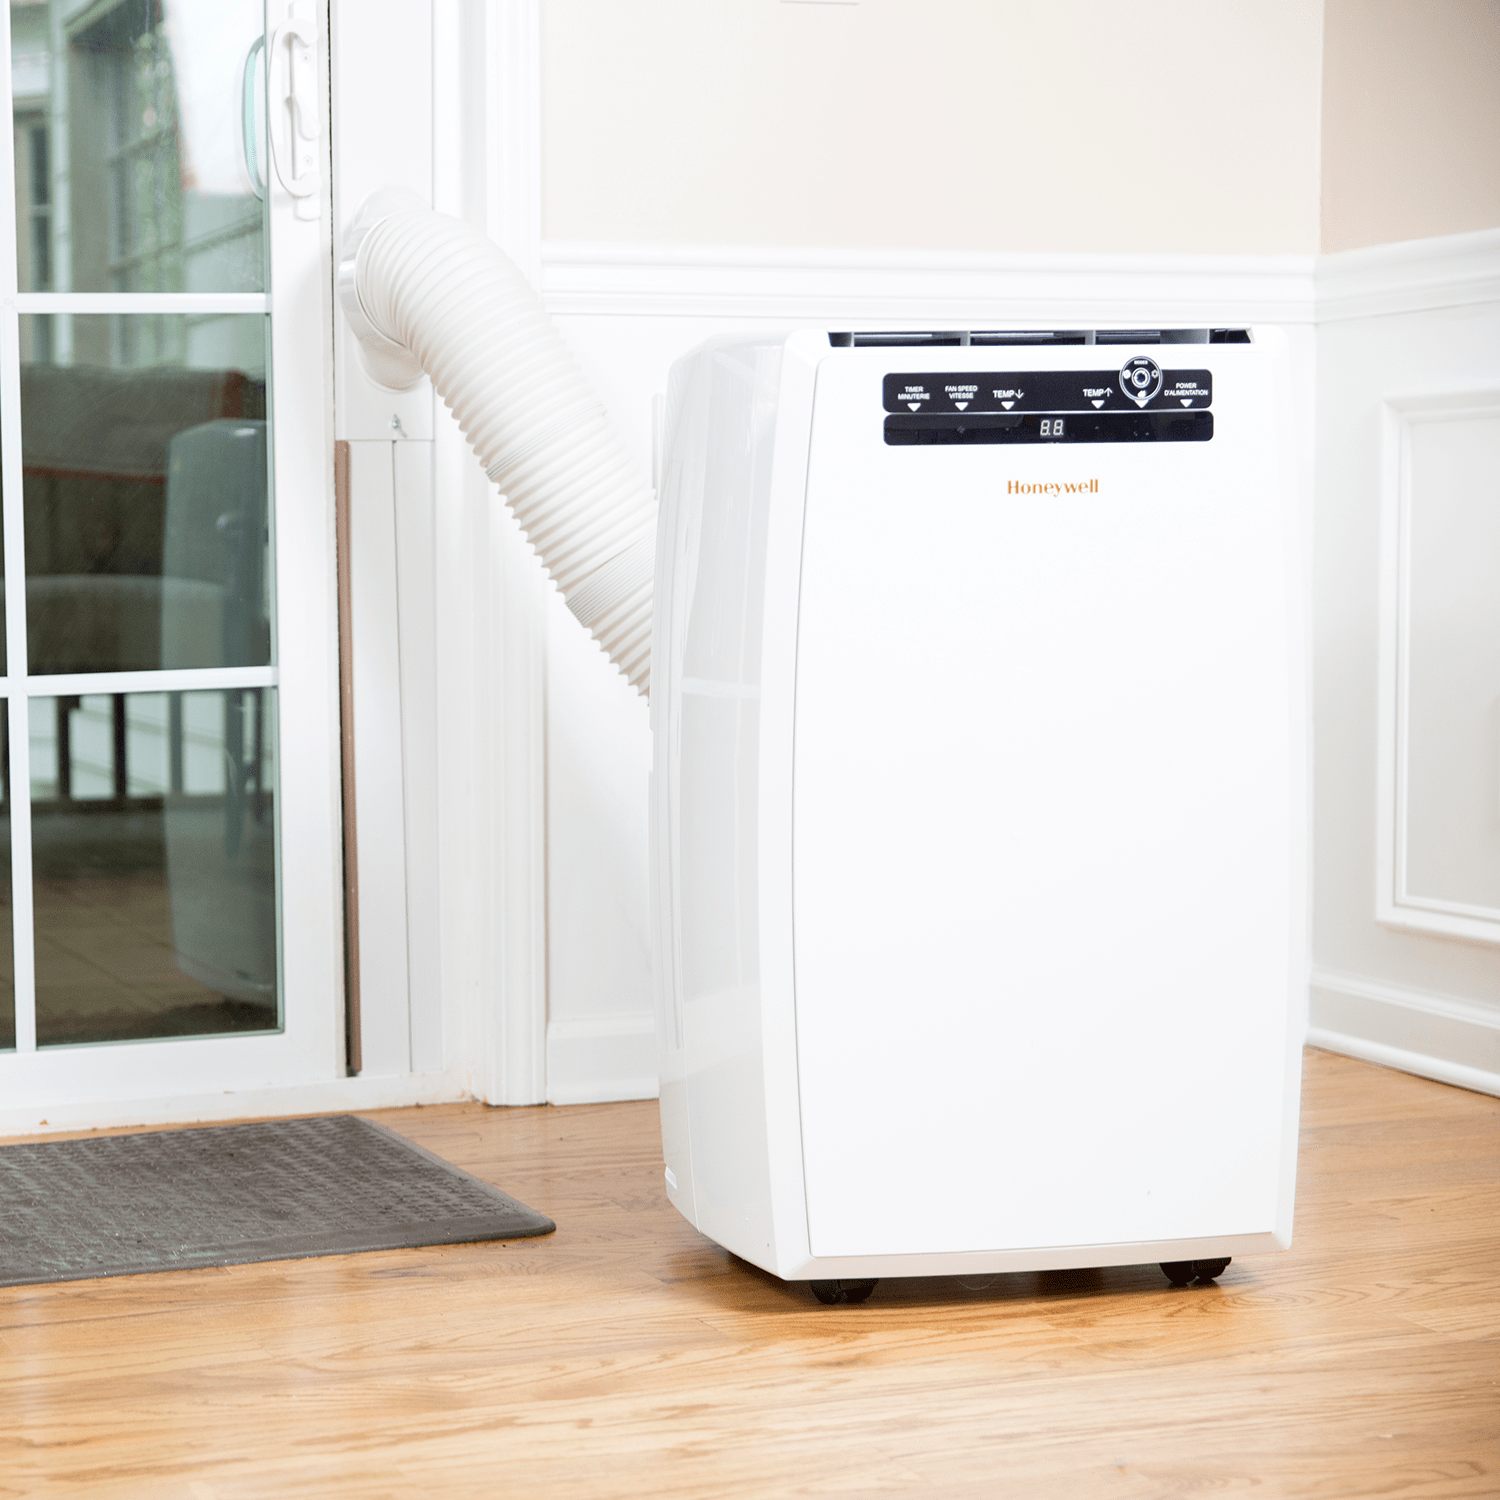 Room Air Conditioner That Does Not Need A Window